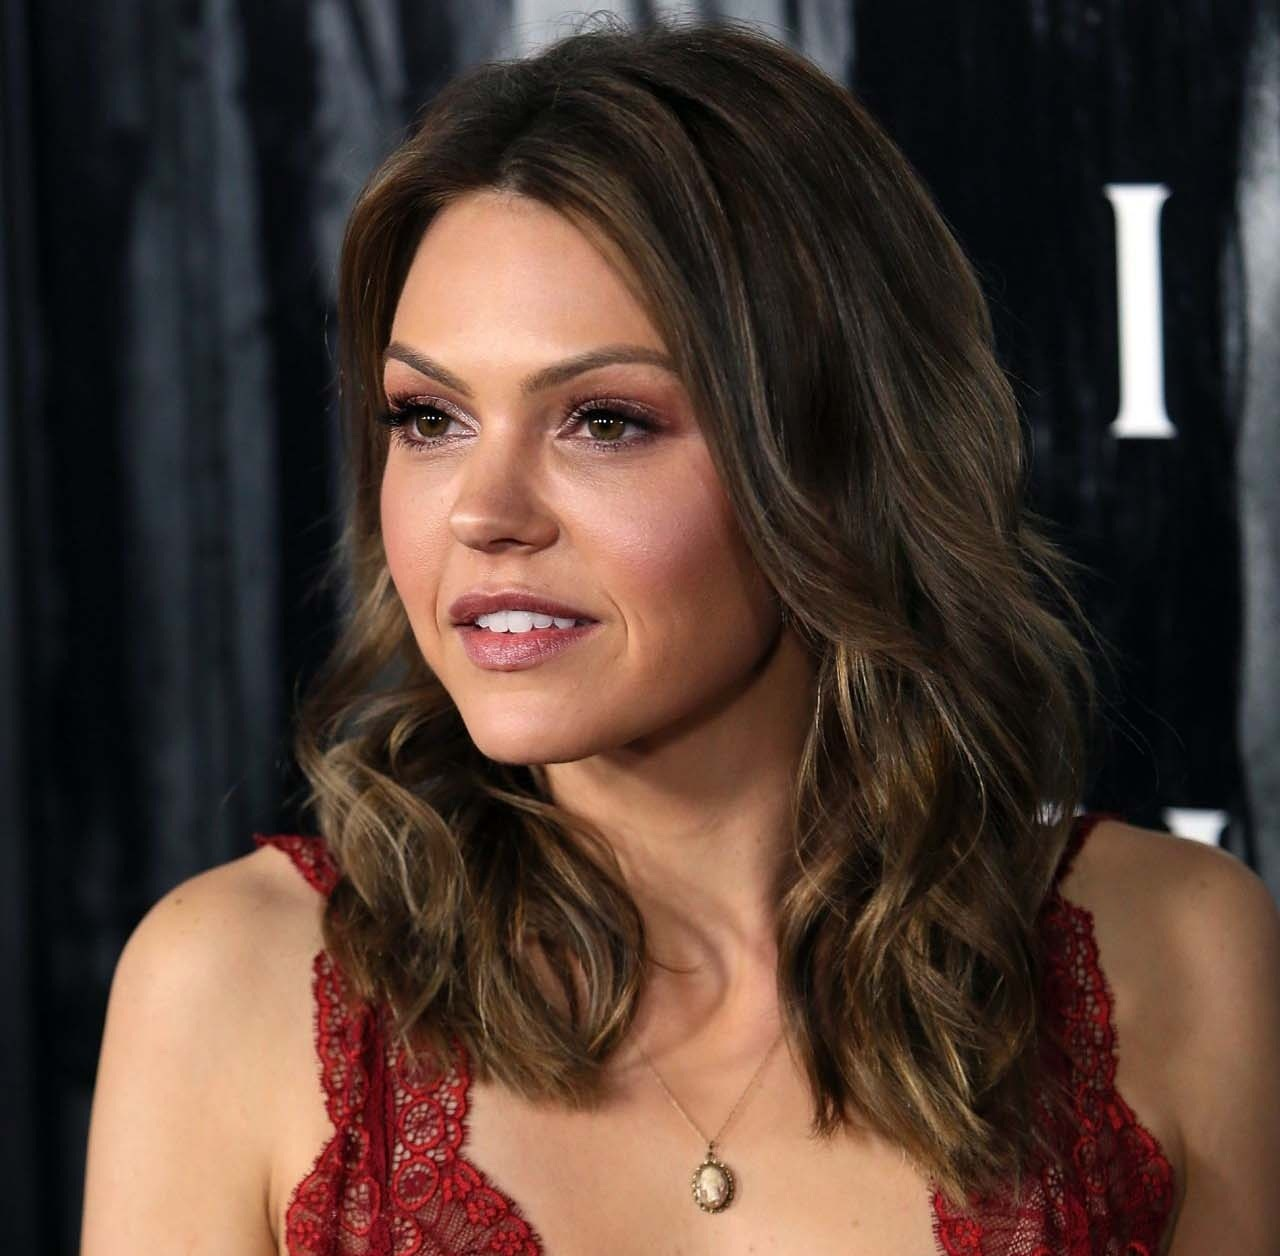 Aimee Teegarden Beautiful Hot Look Pictures